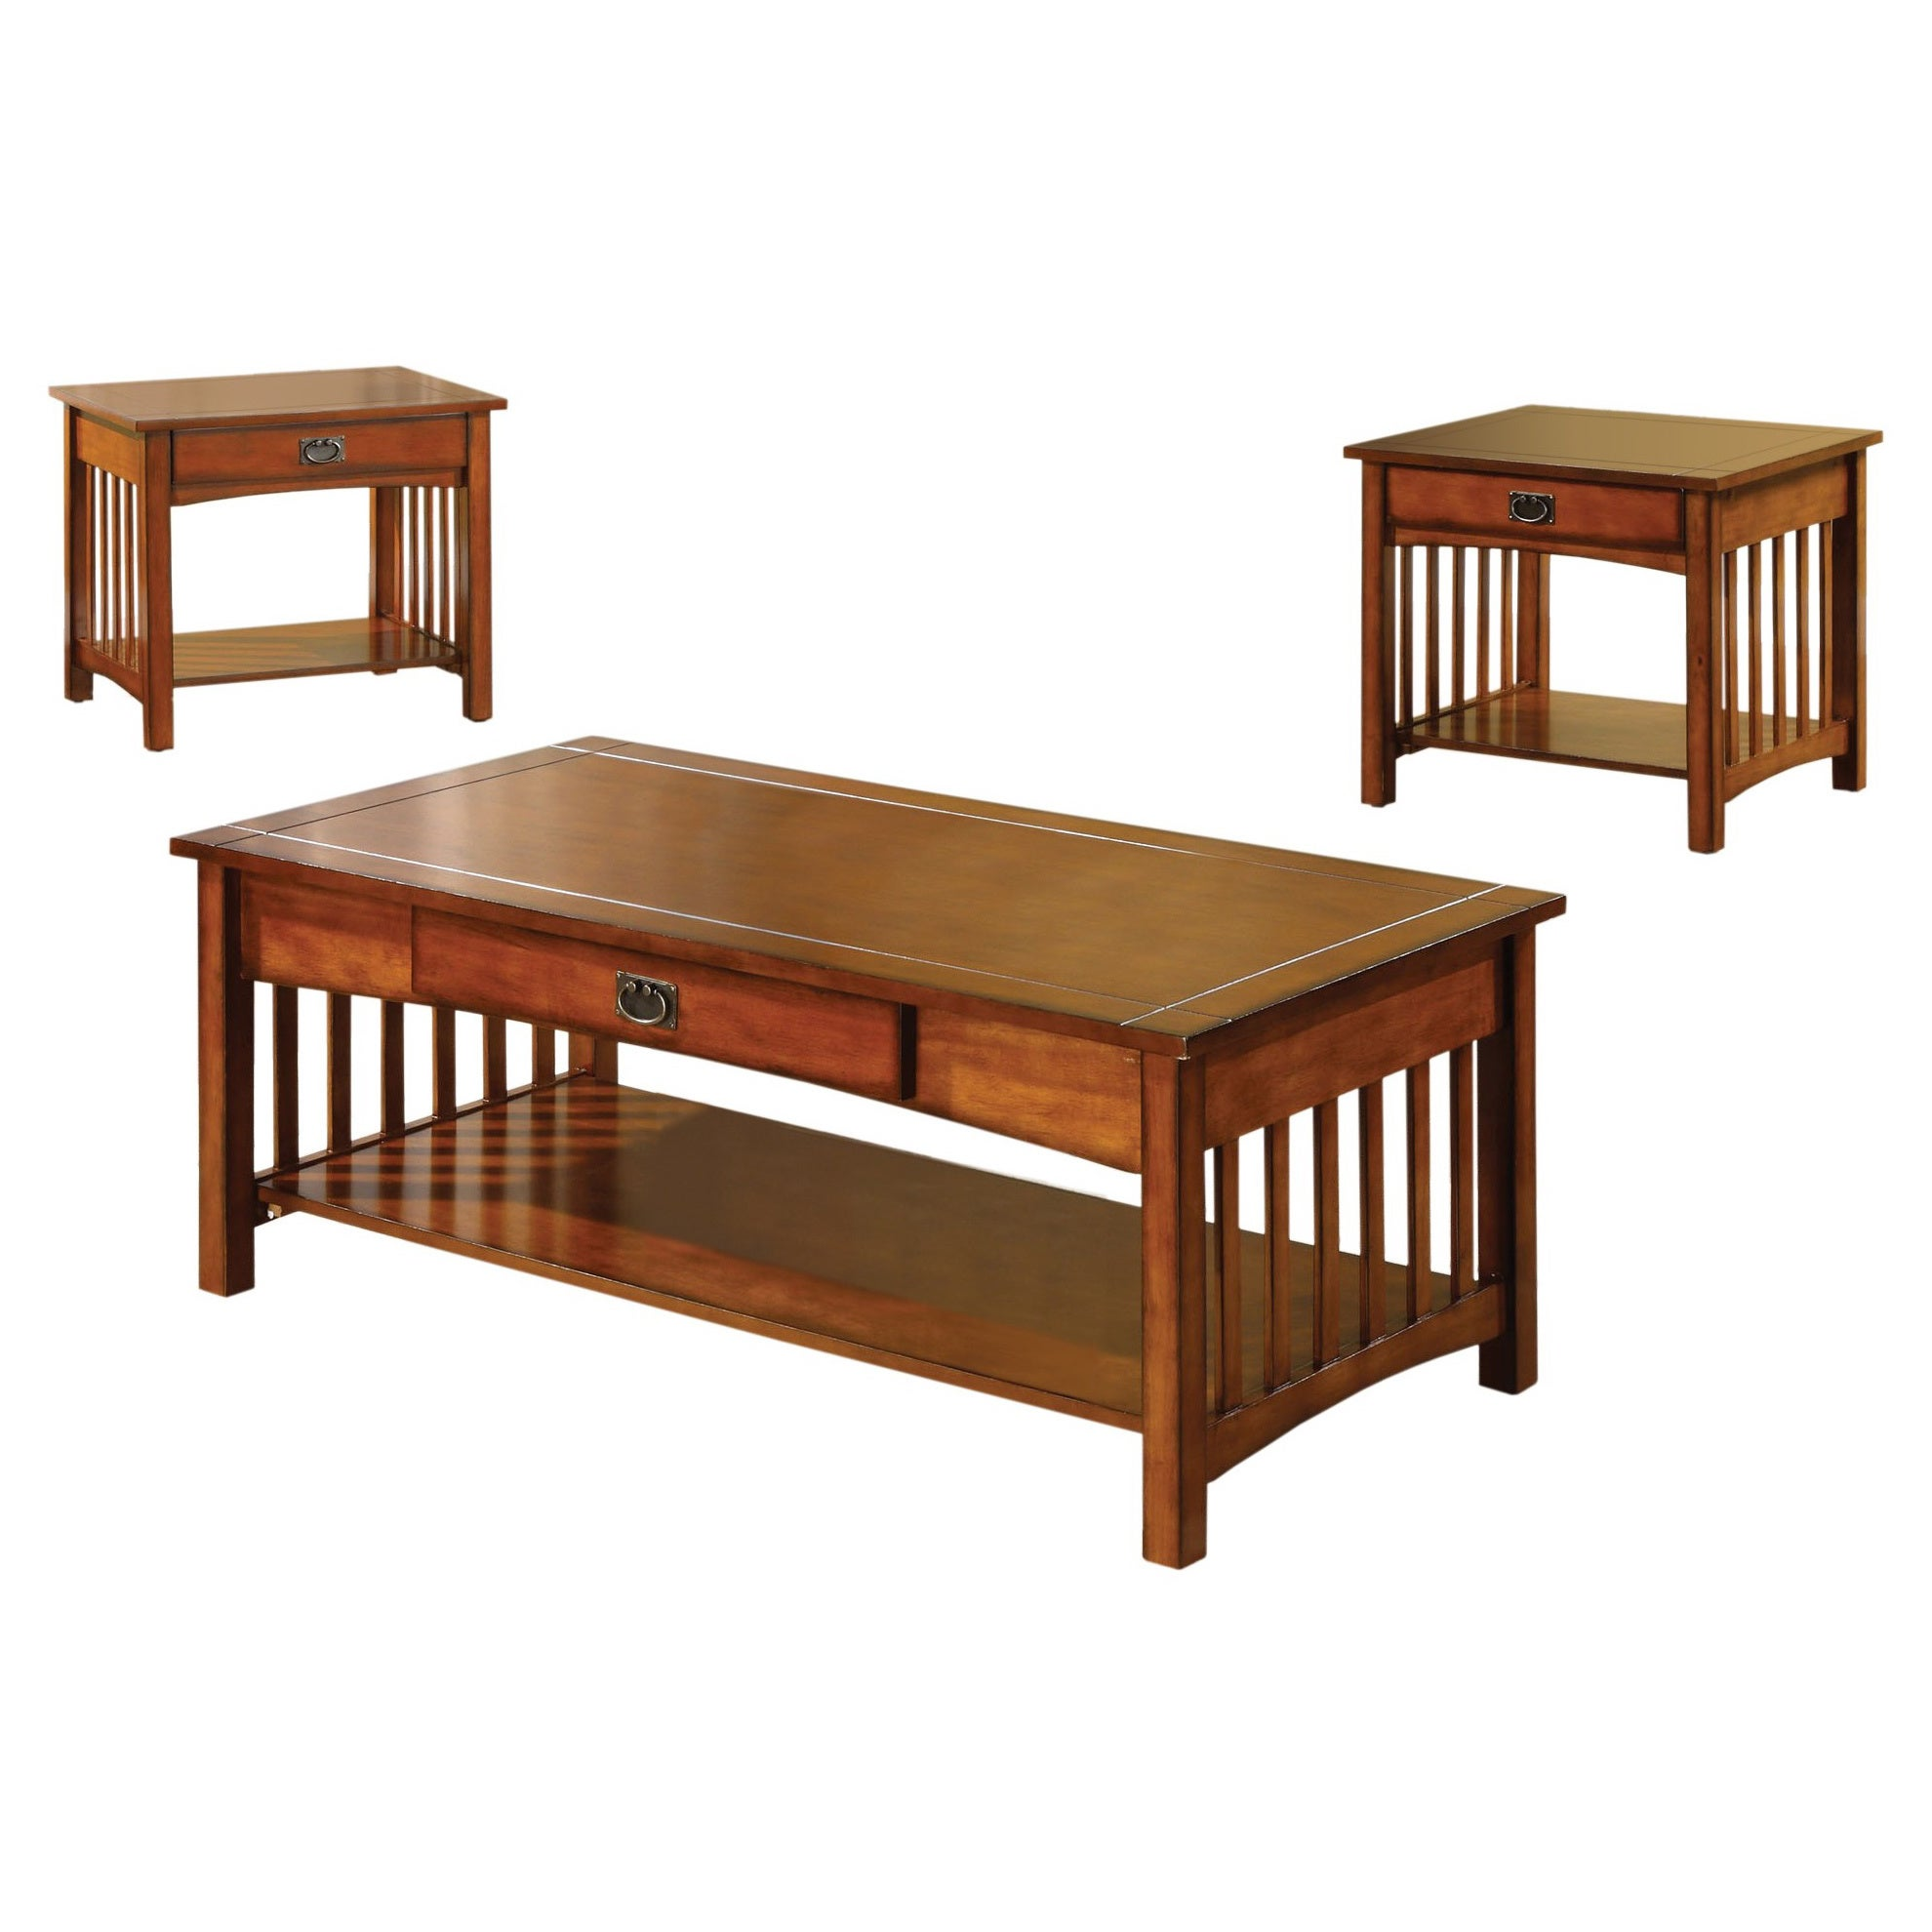 Shop furniture of america nash mission style 3 piece antique oak finish coffee table set on sale free shipping today overstock com 8126010